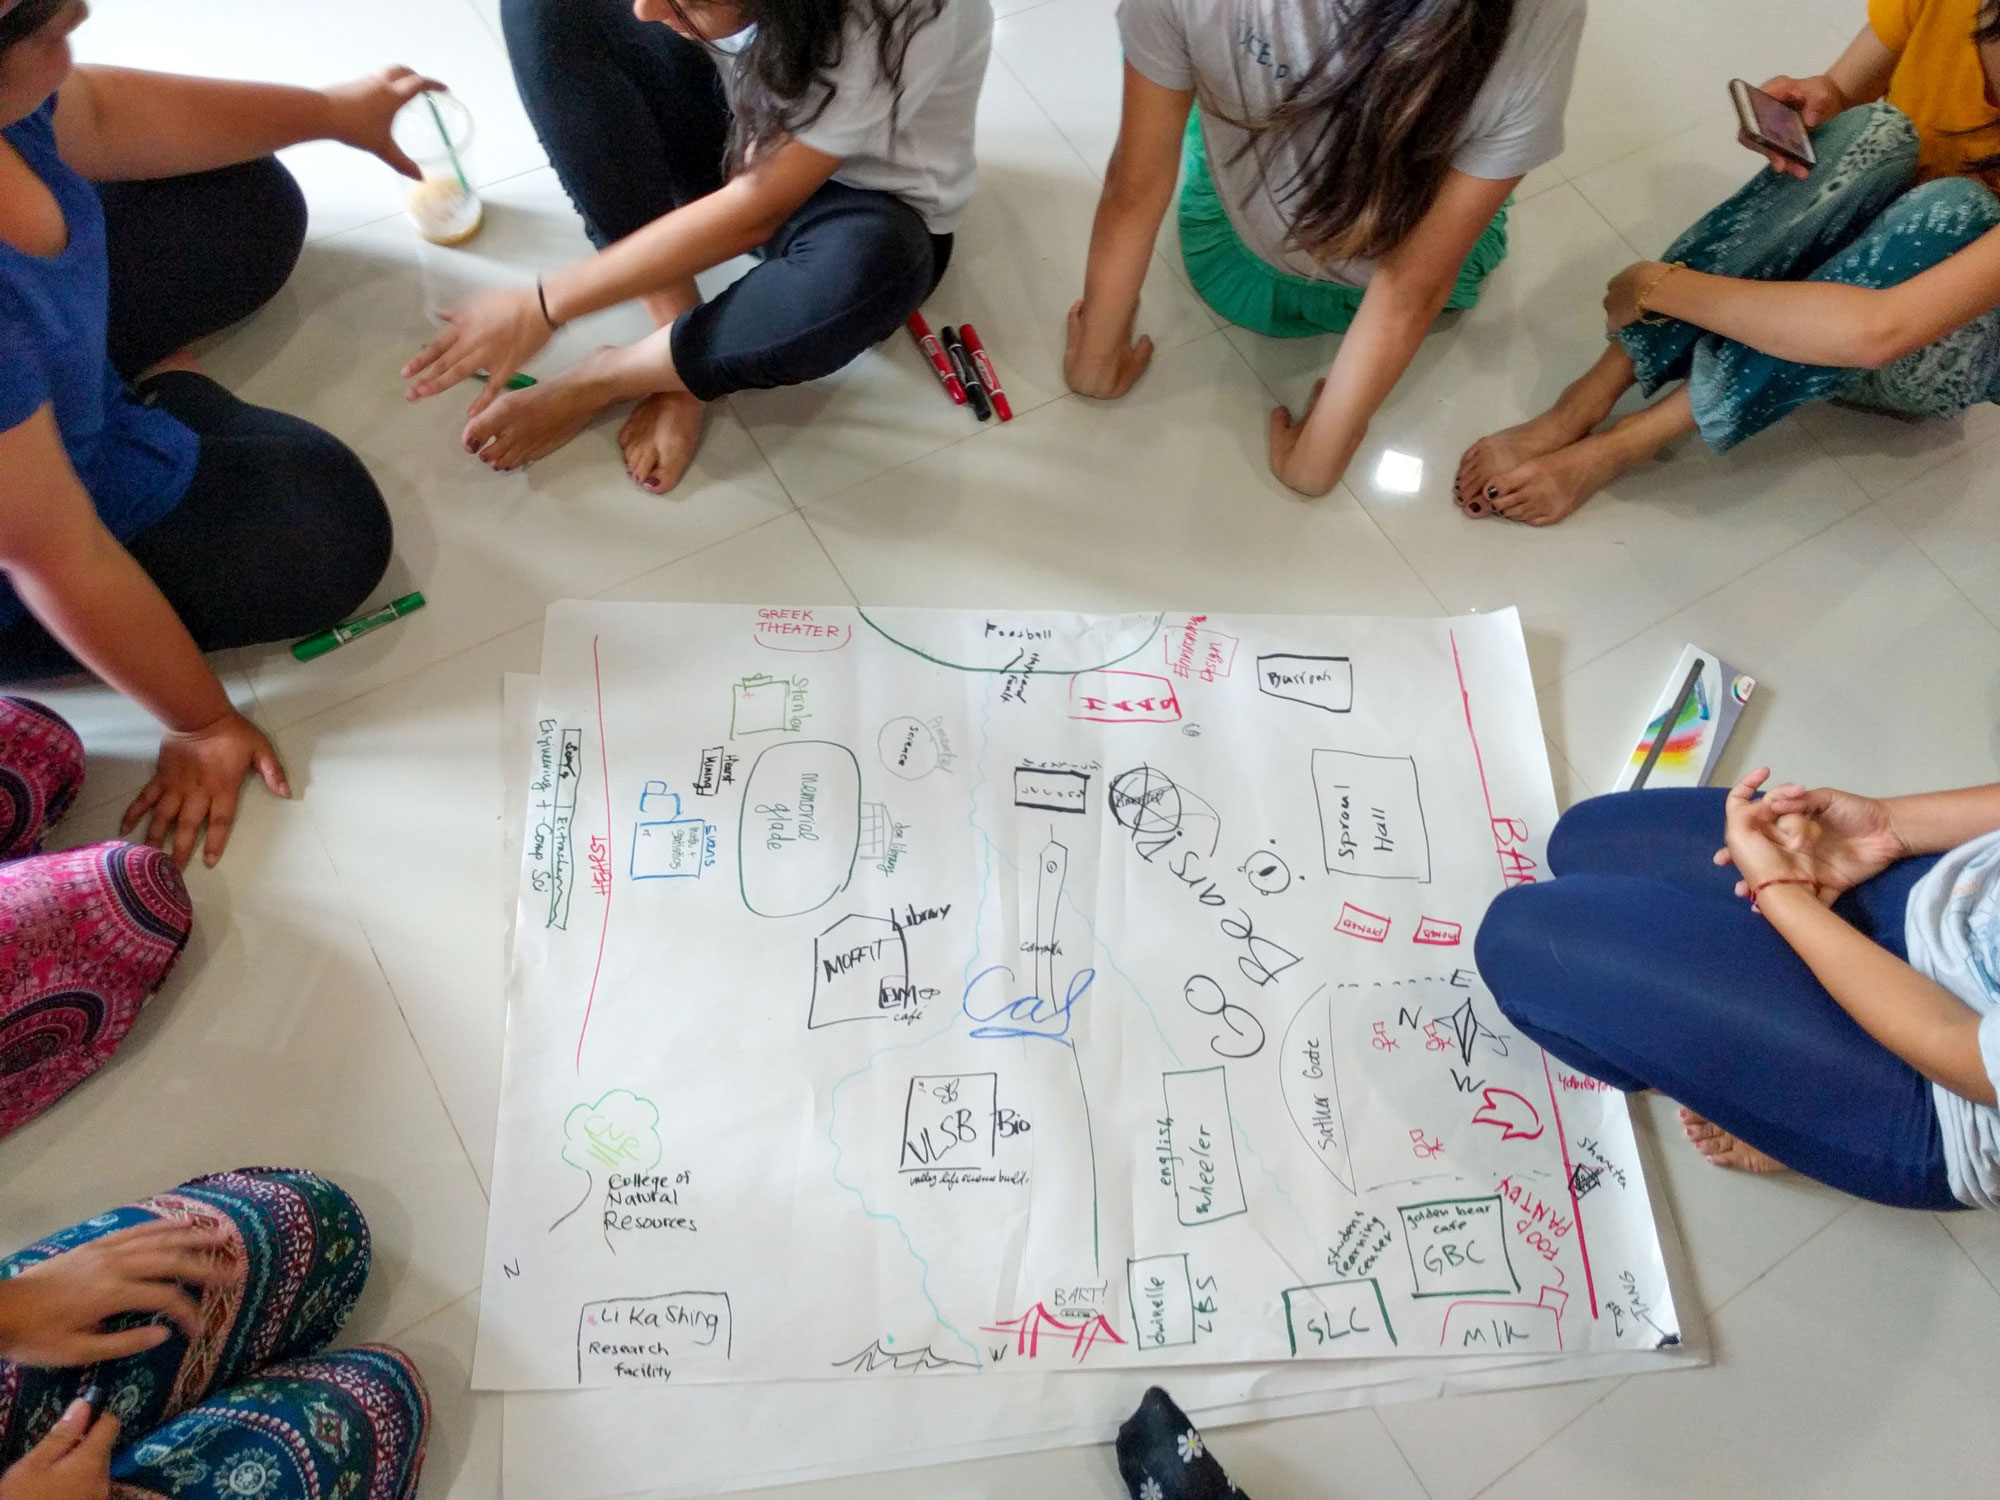 Students draw a map of a university campus on the floor.